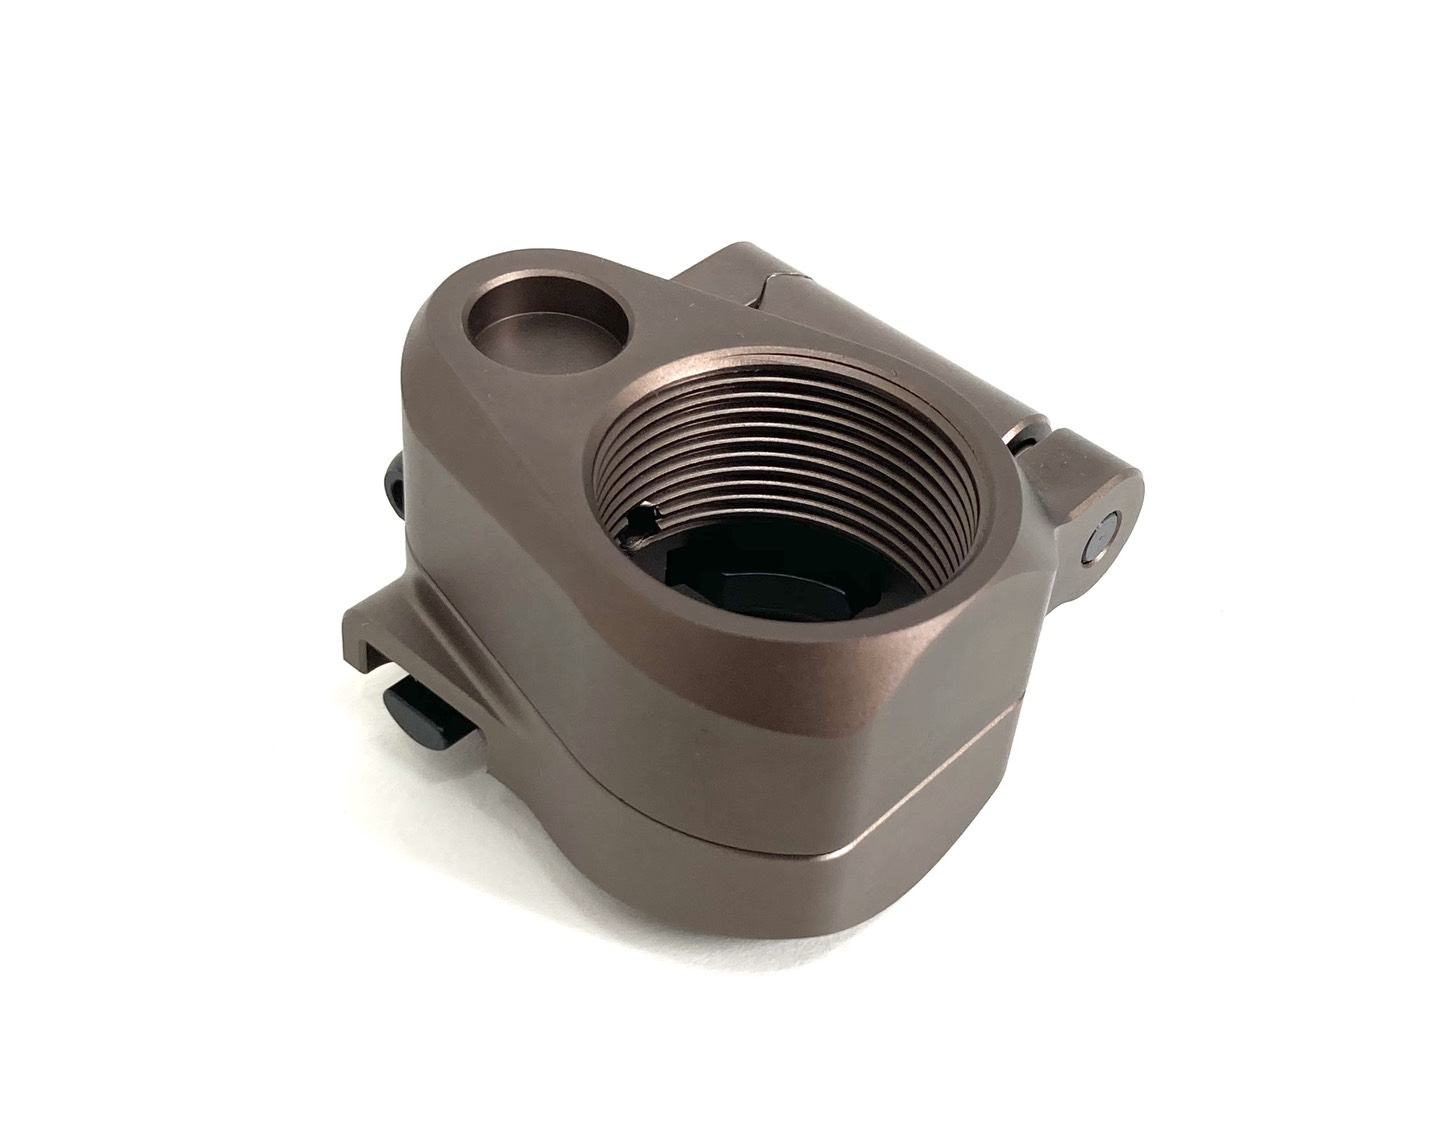 AR Folding Stock Adapter Fit M16/M4 SR25 Series GBB(AEG) For Airsoft DE